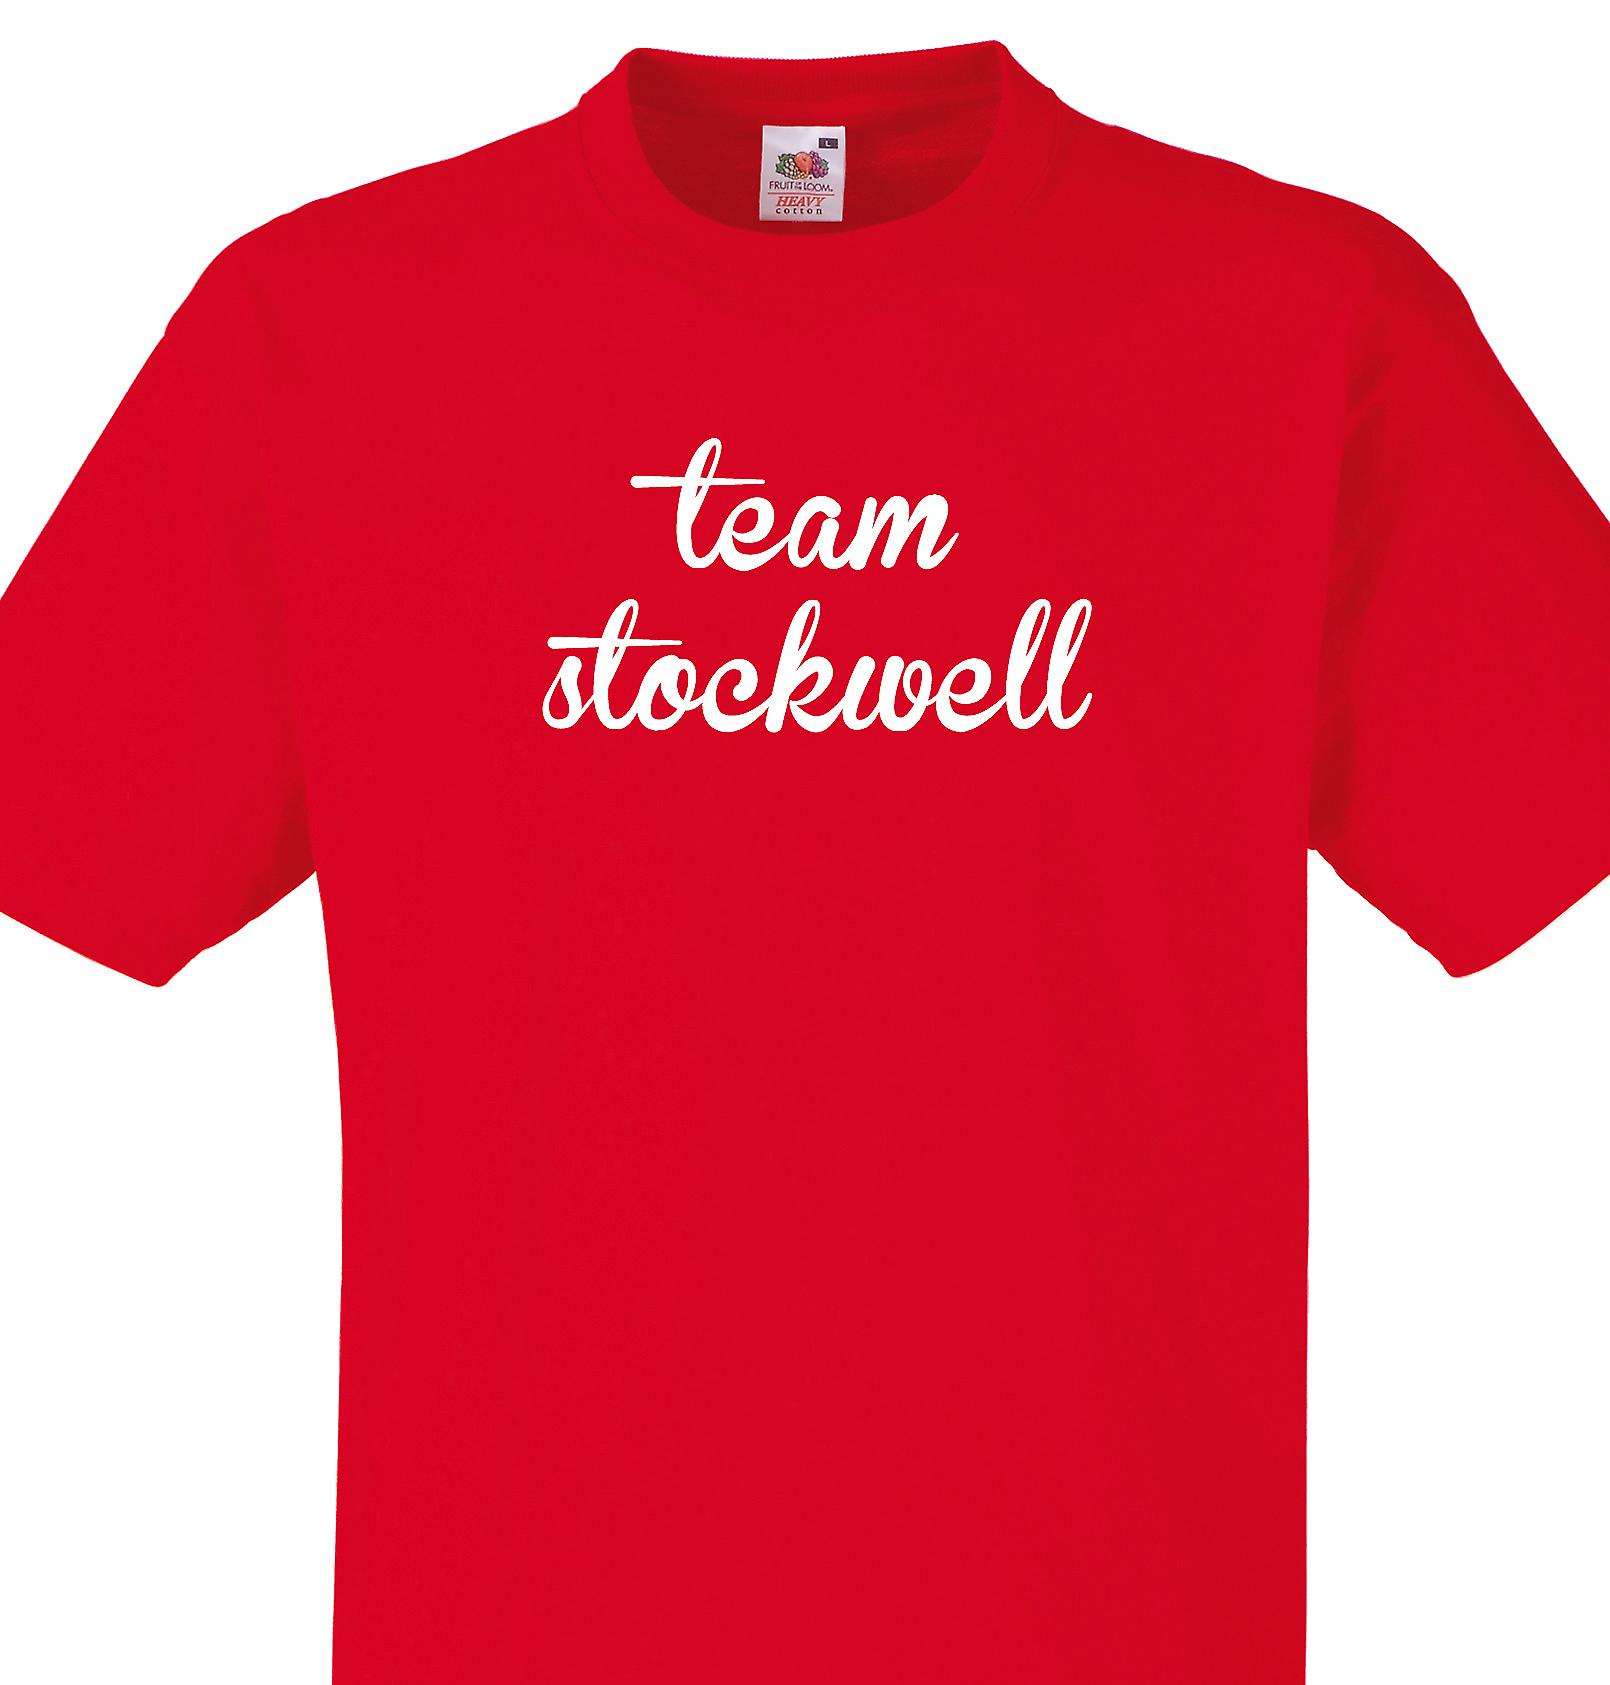 Team Stockwell Red T shirt